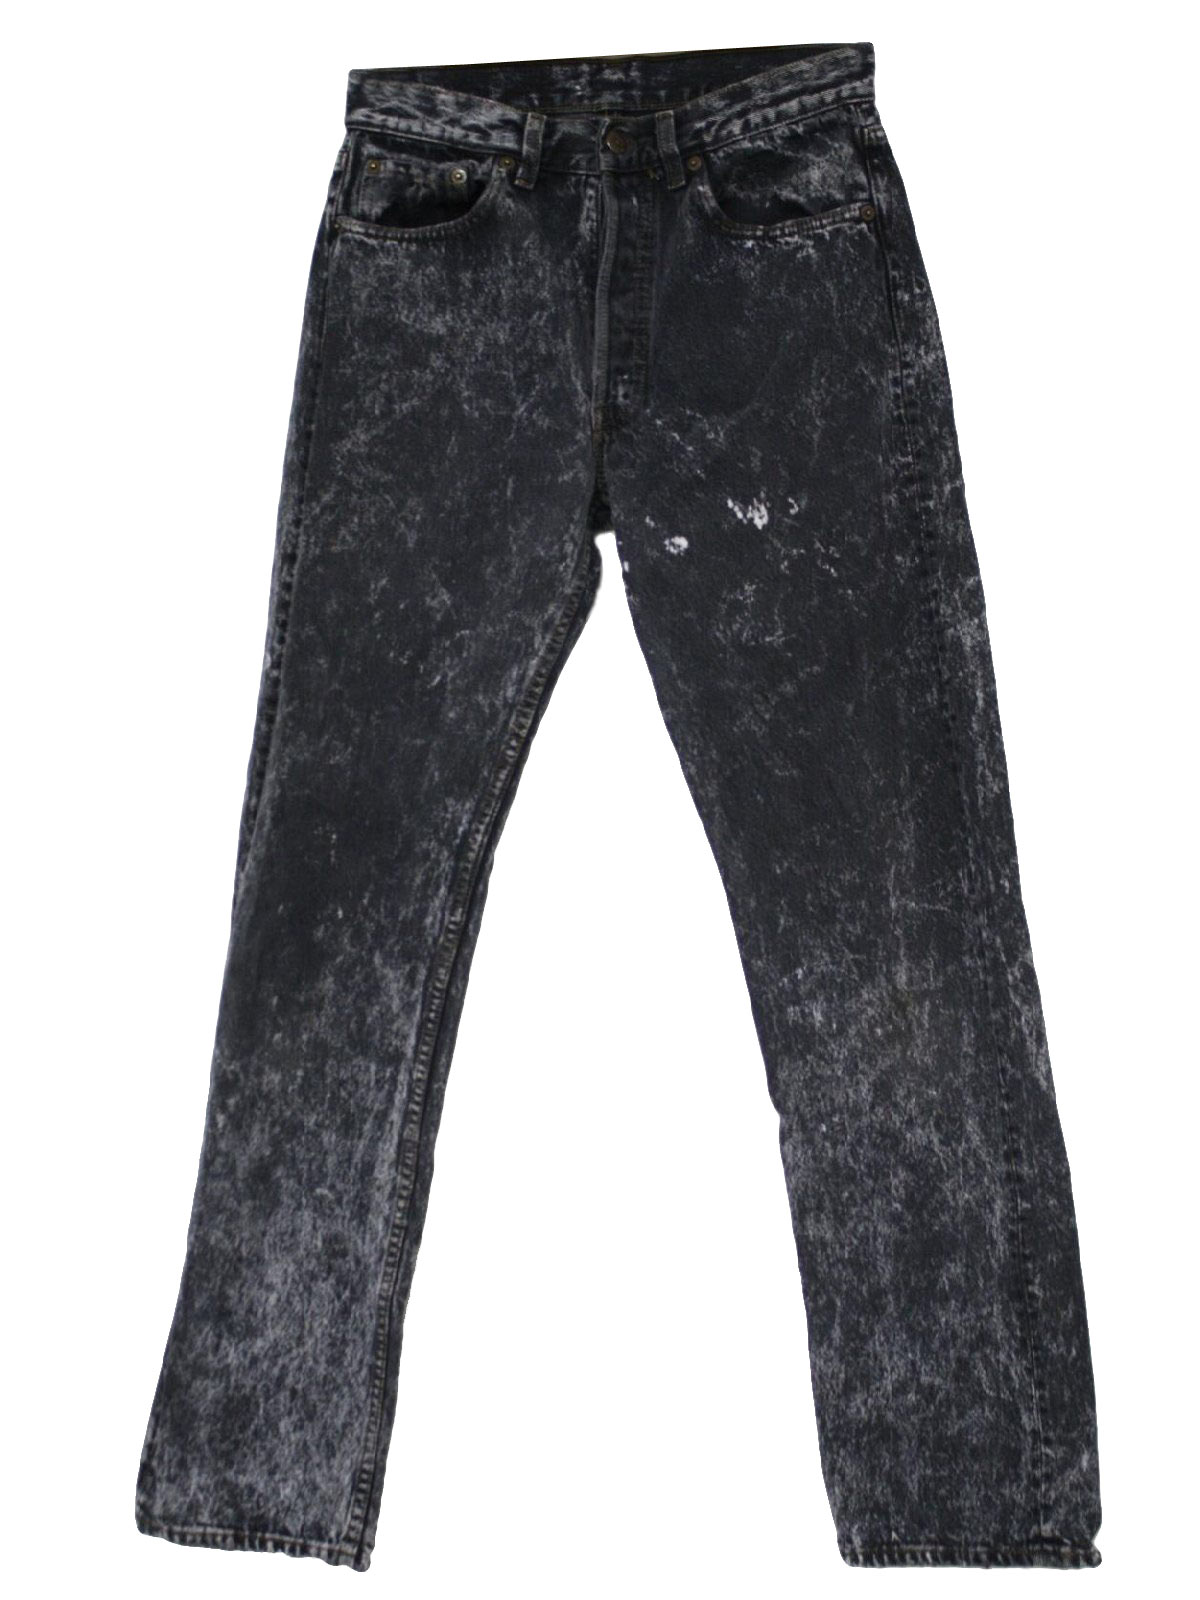 Black And White Jeans Mens - Jeans Am